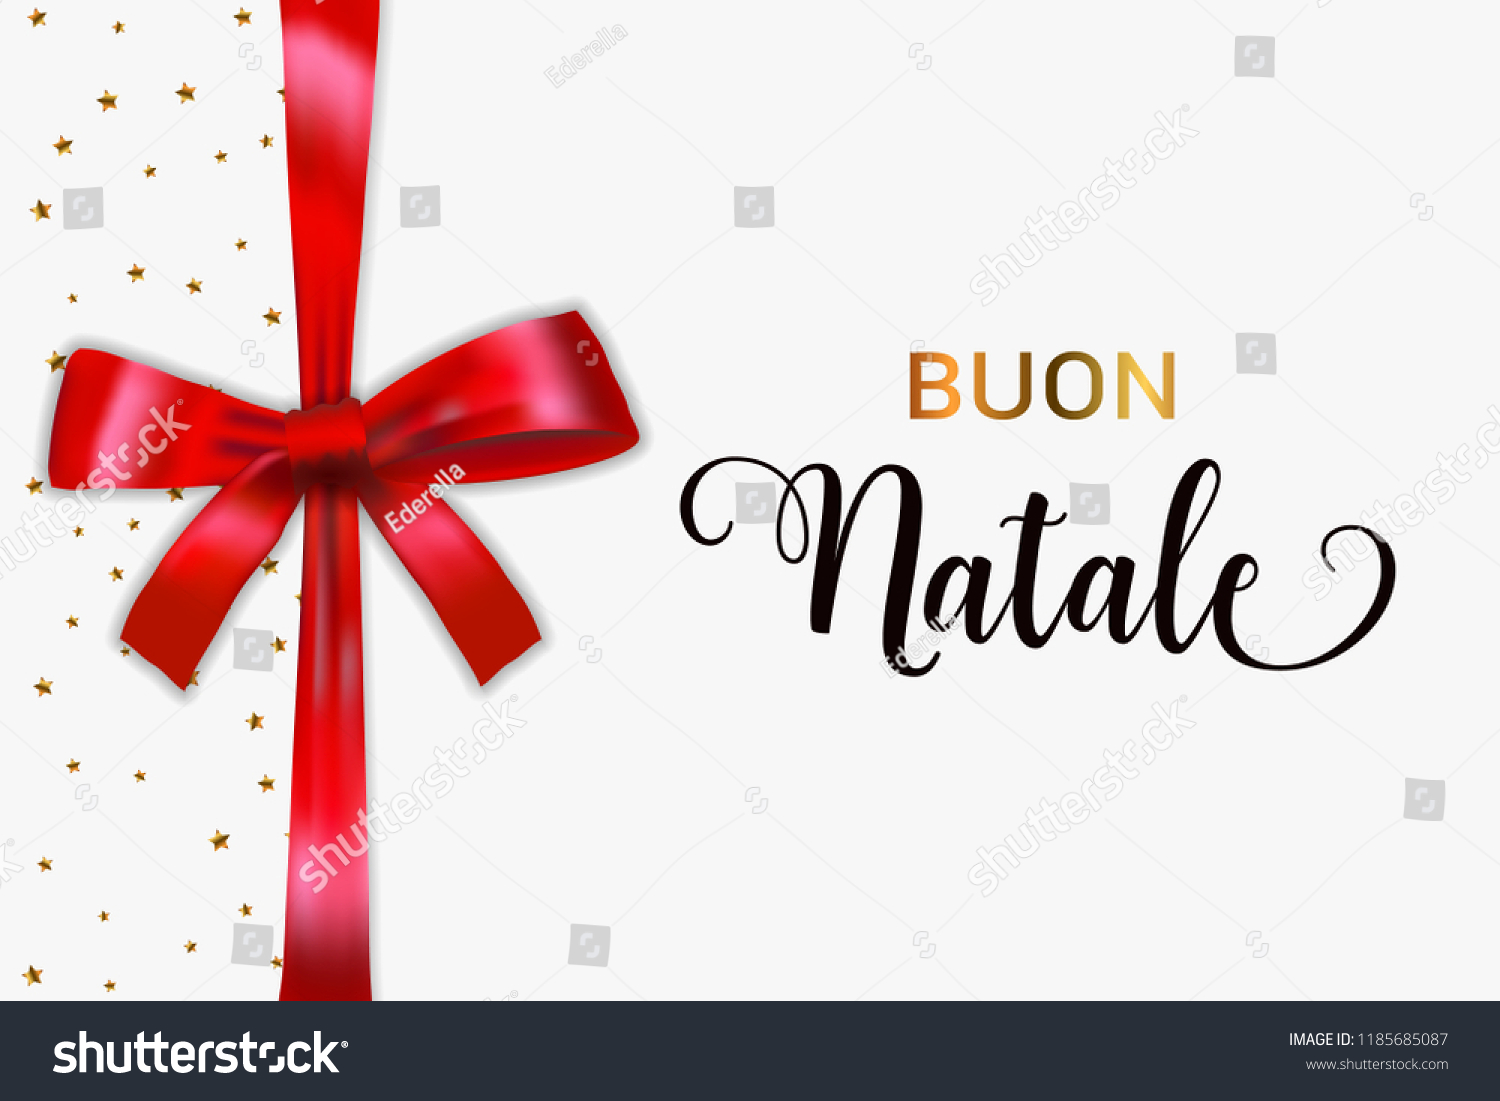 Buon Natale Merry Christmas Italian Typography Stock Vector (Royalty ...